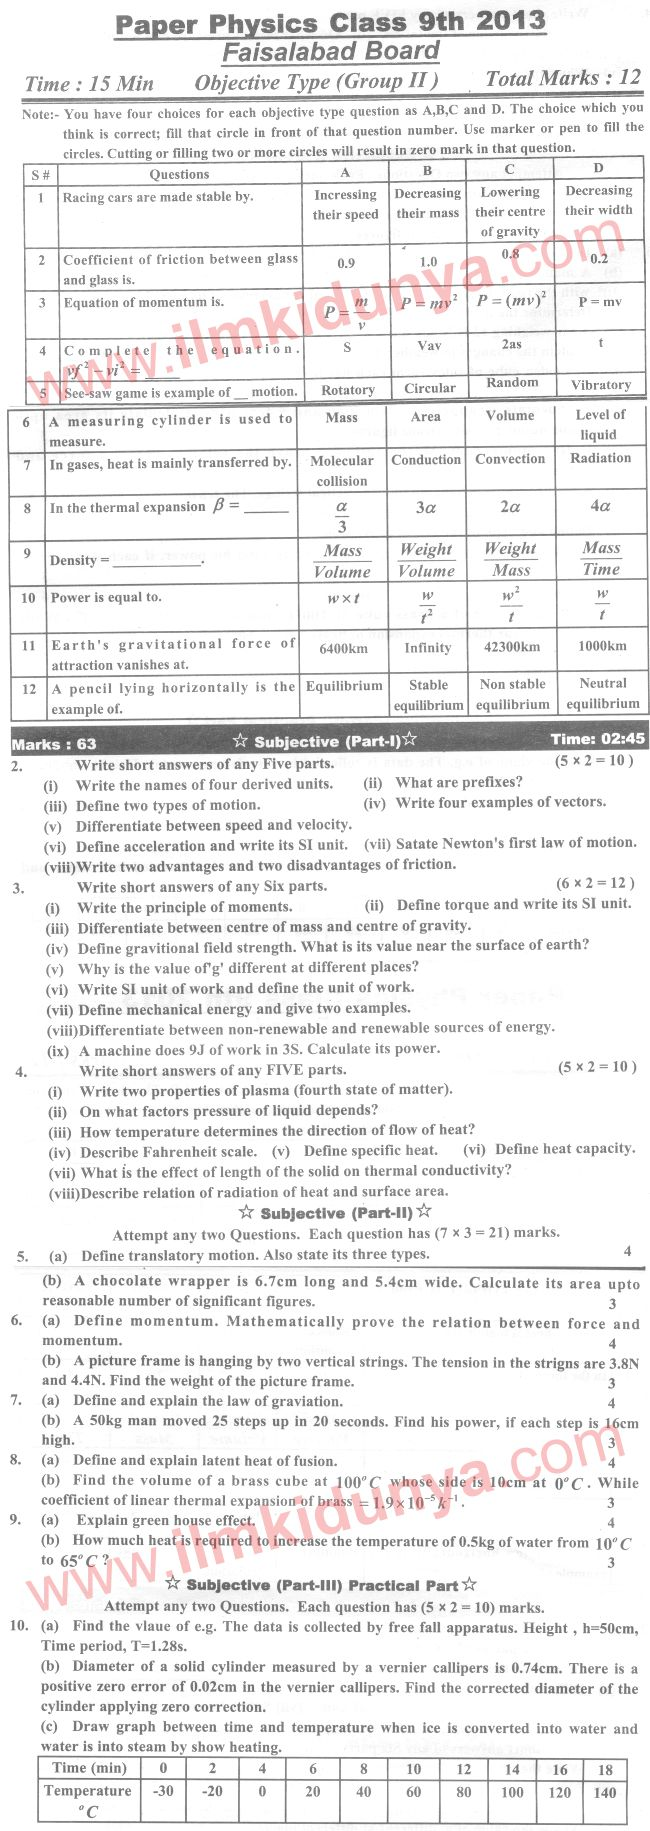 Past Papers 2013 Faisalabad Board 9th Class Physics Group